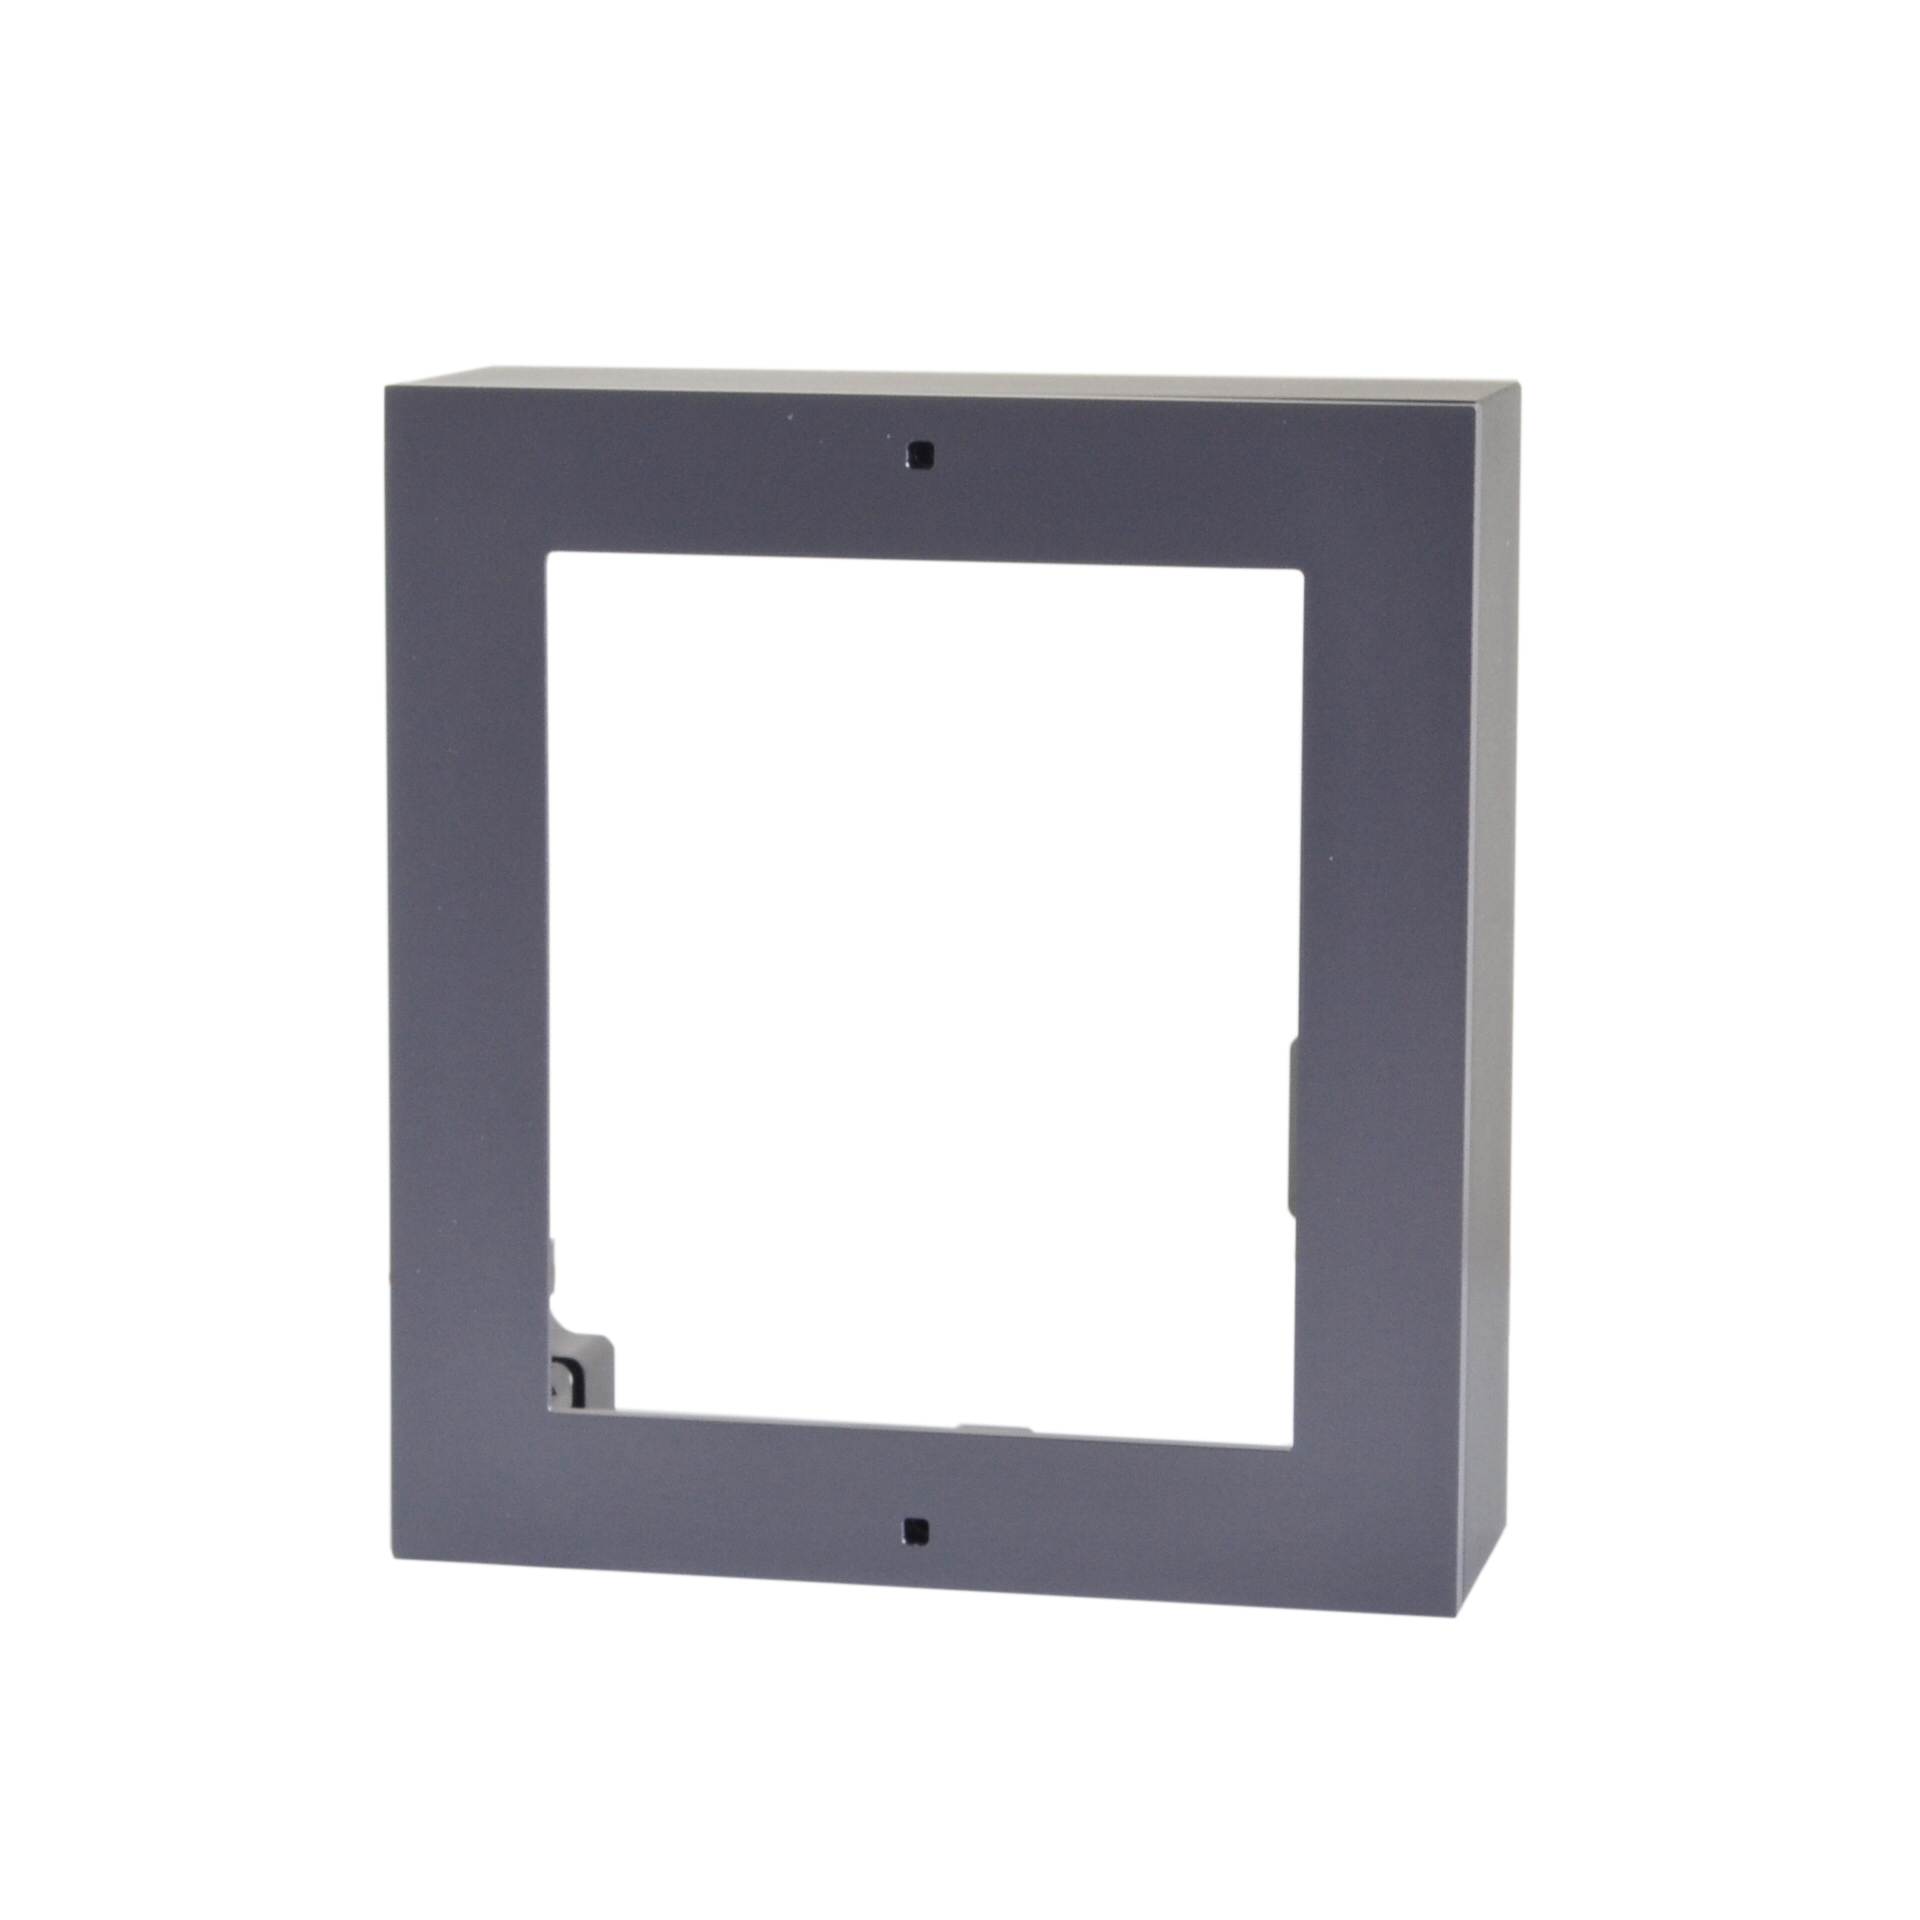 DS-KD-ACW1(Aviation Aluminum) For Wall Mounting Accessory For Modular Door Station